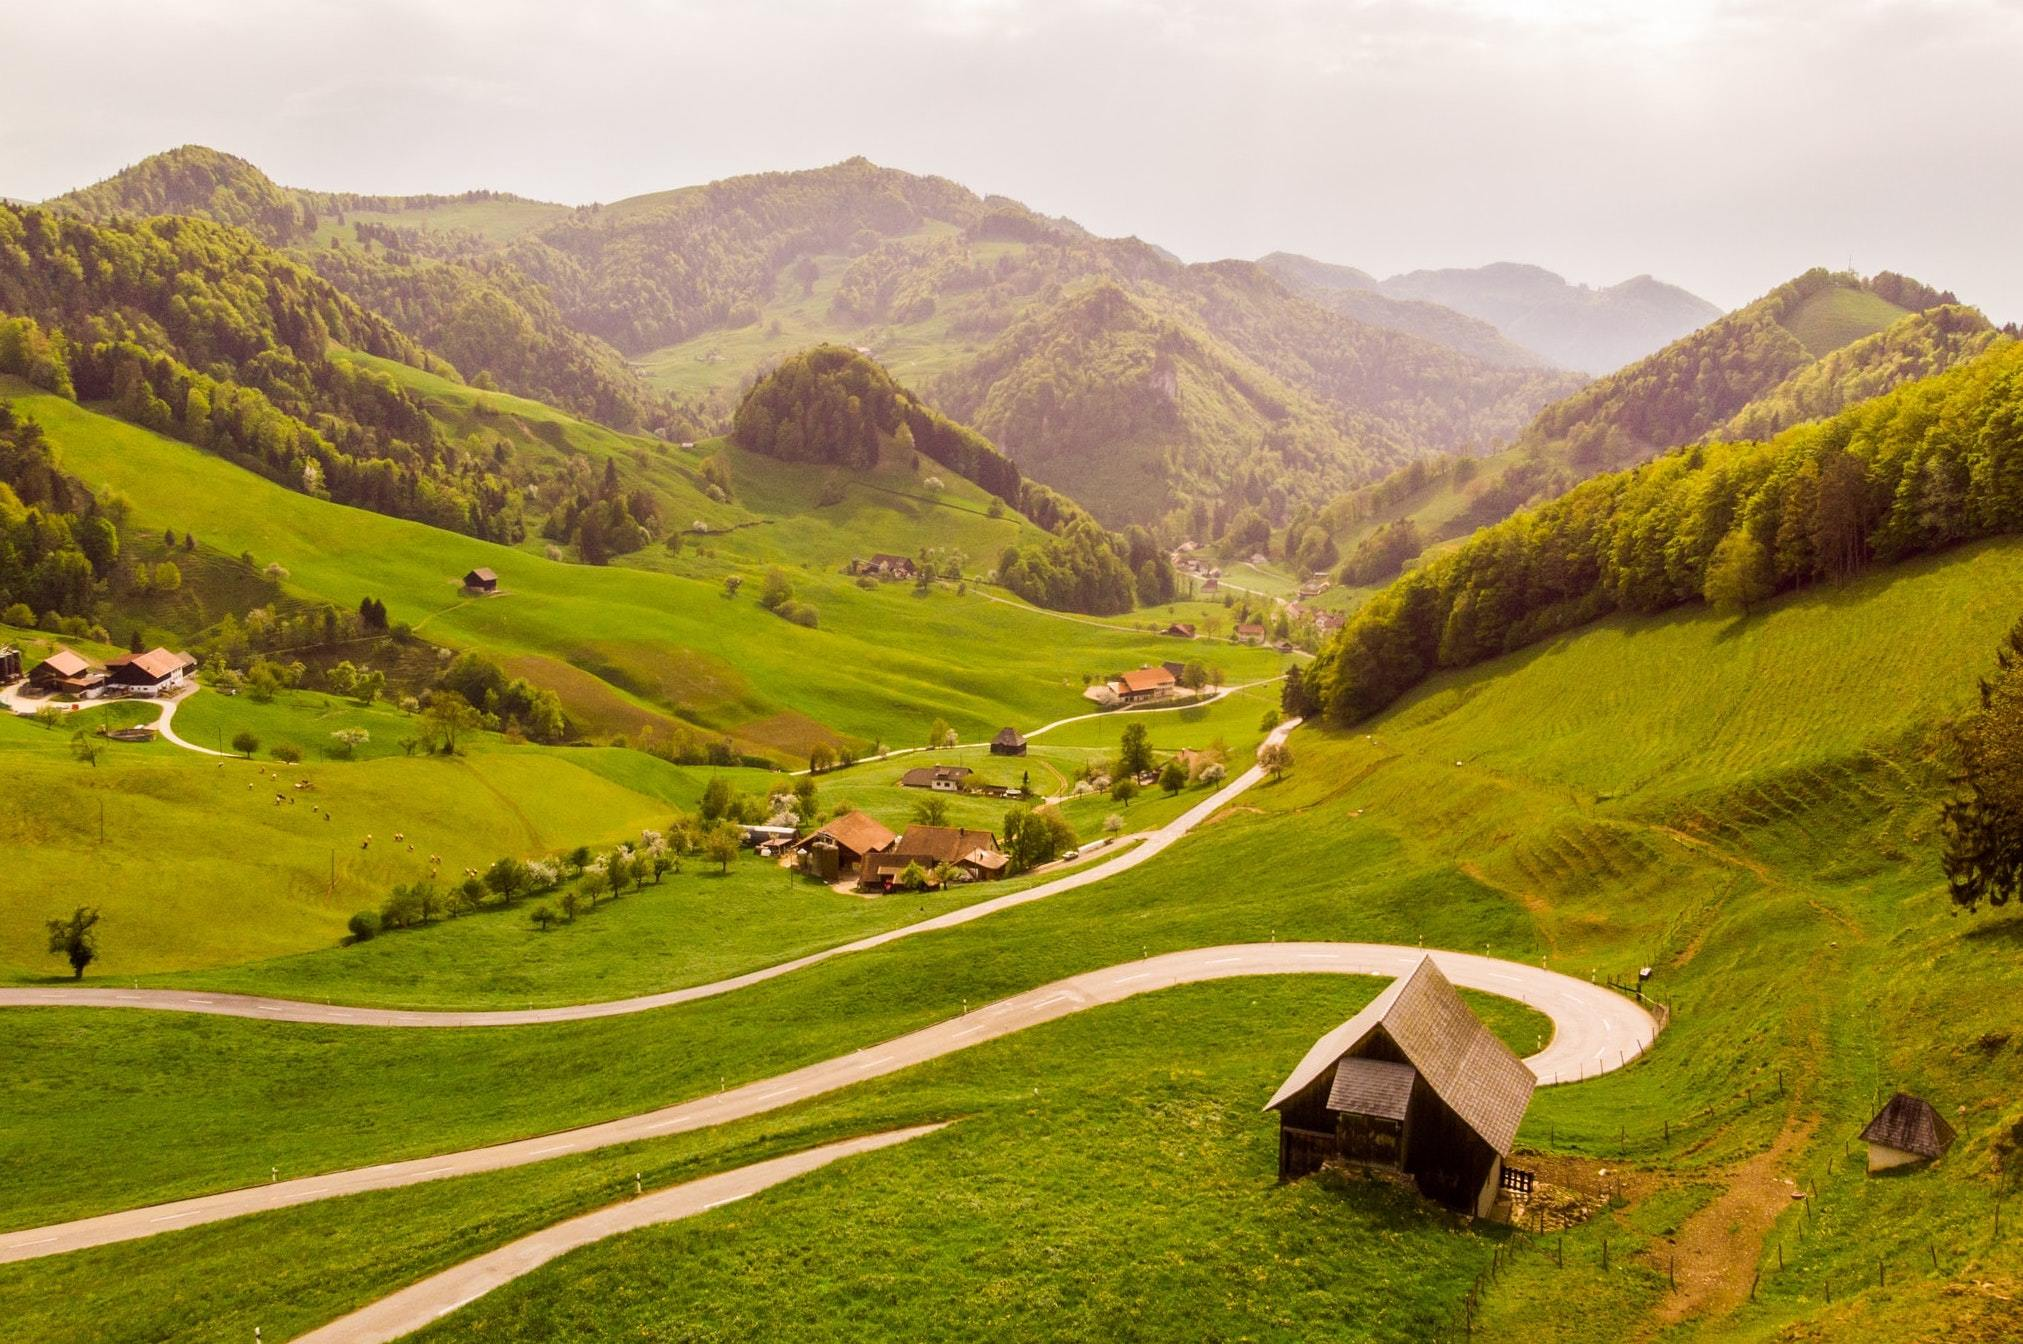 Rolling green hills and a small village in Passwang Pass, Mümliswil-Ramiswil, Switzerland.